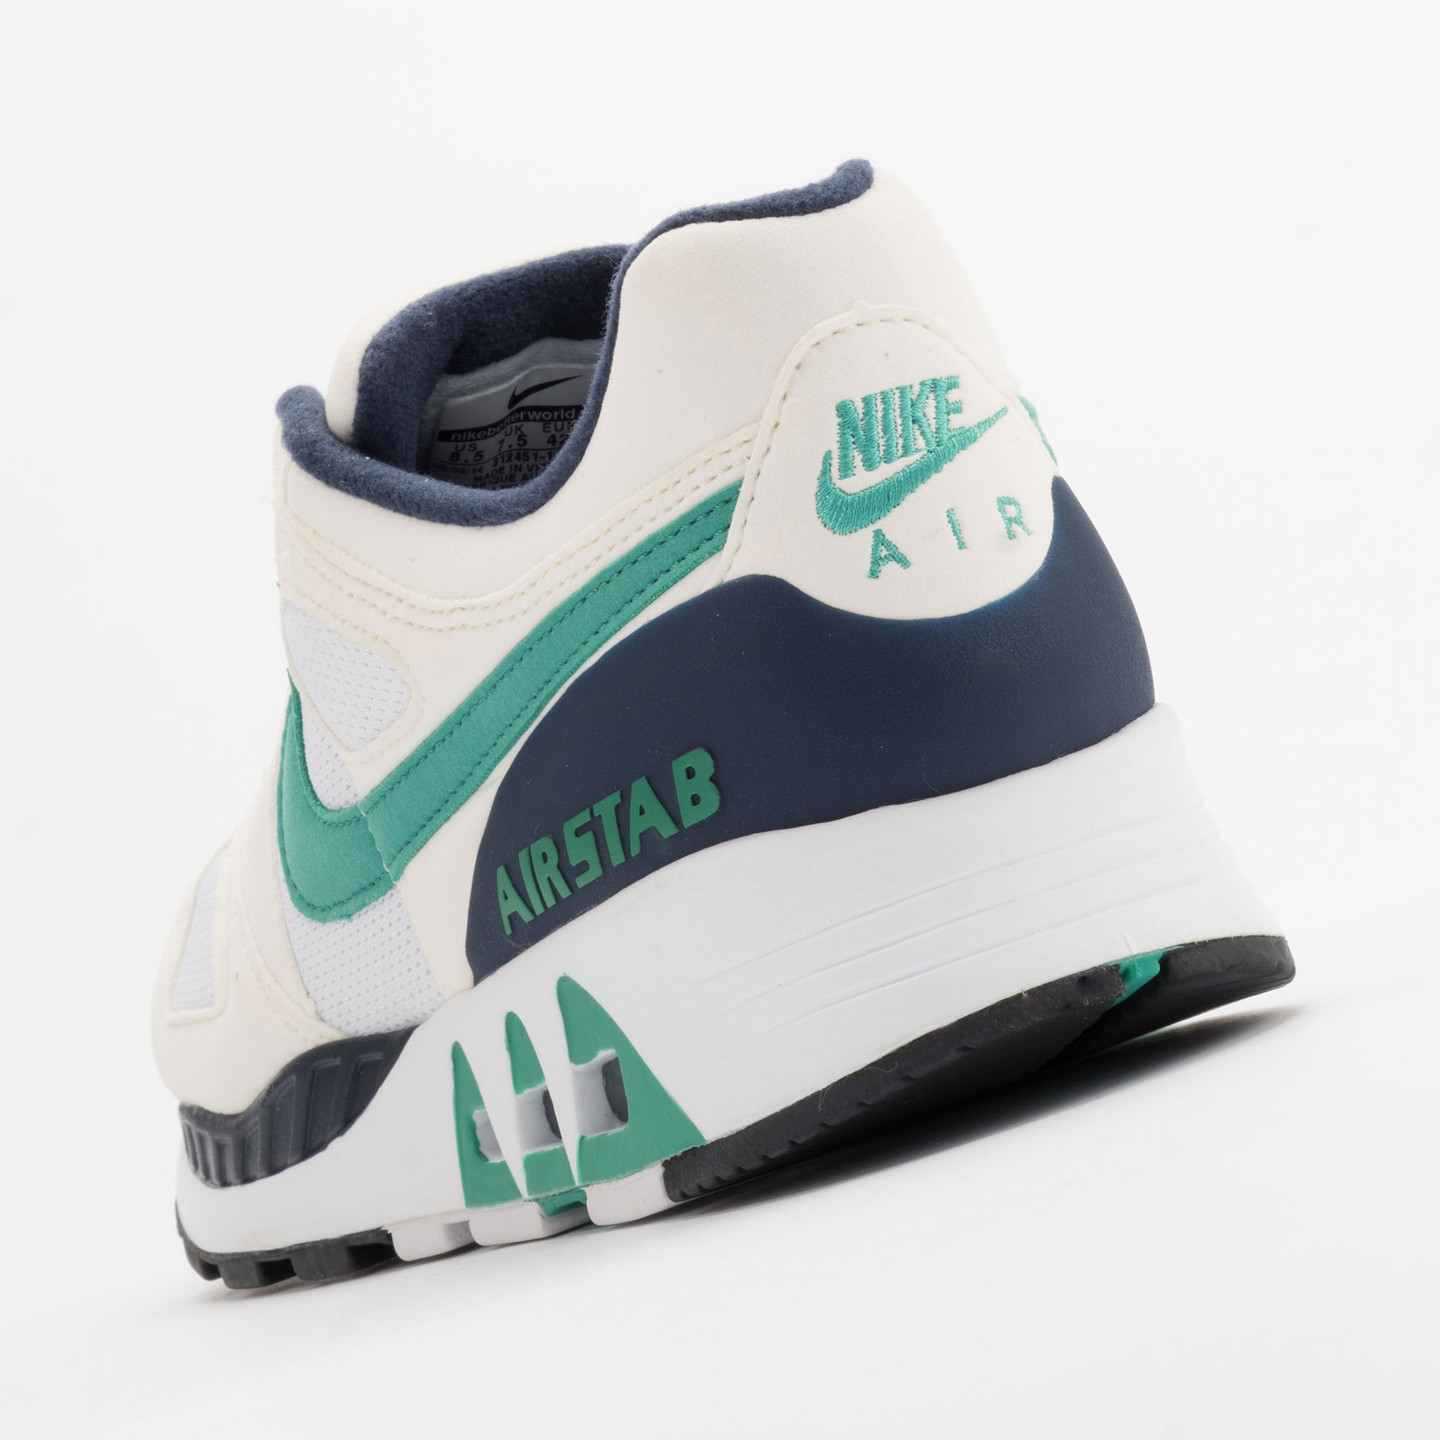 Nike Air Stab White/Emerald Green-Sl-Mid Nvy 312451-100-47.5